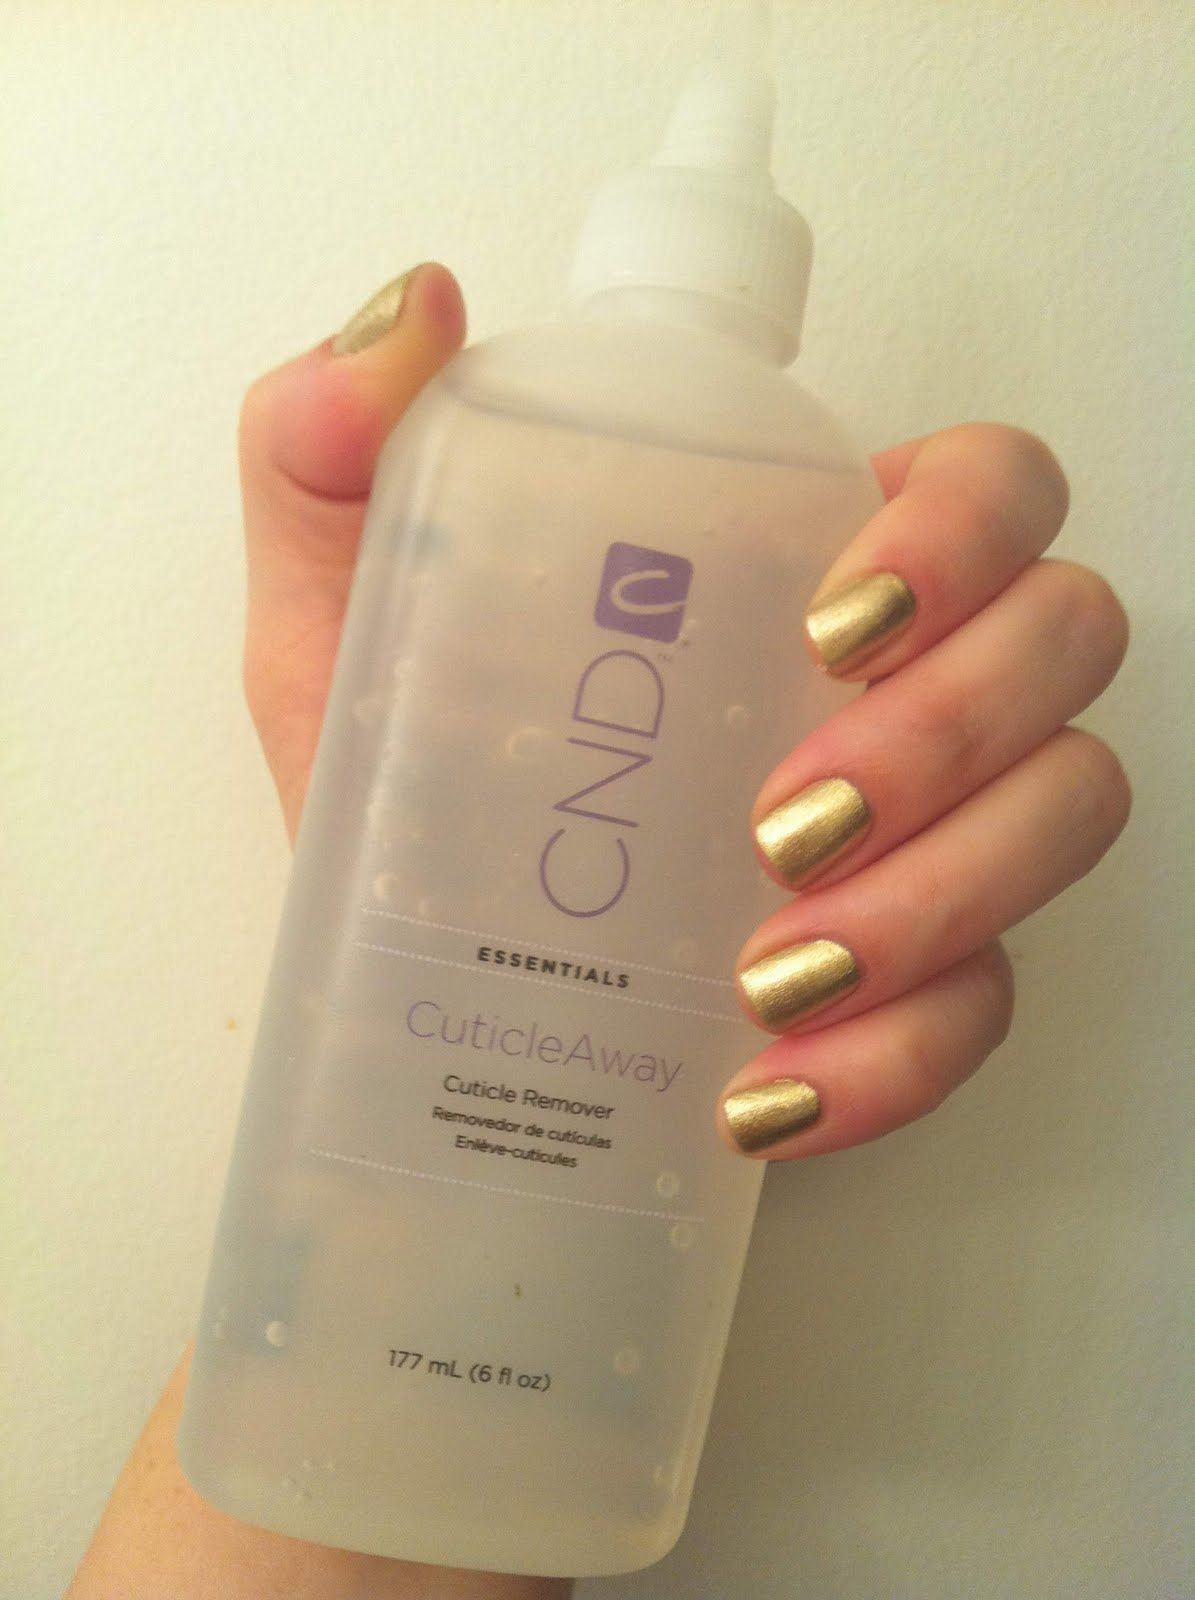 Pure Spa Direct Blog: Manicurist MUST HAVE - CND Cuticle Away -- Our ...